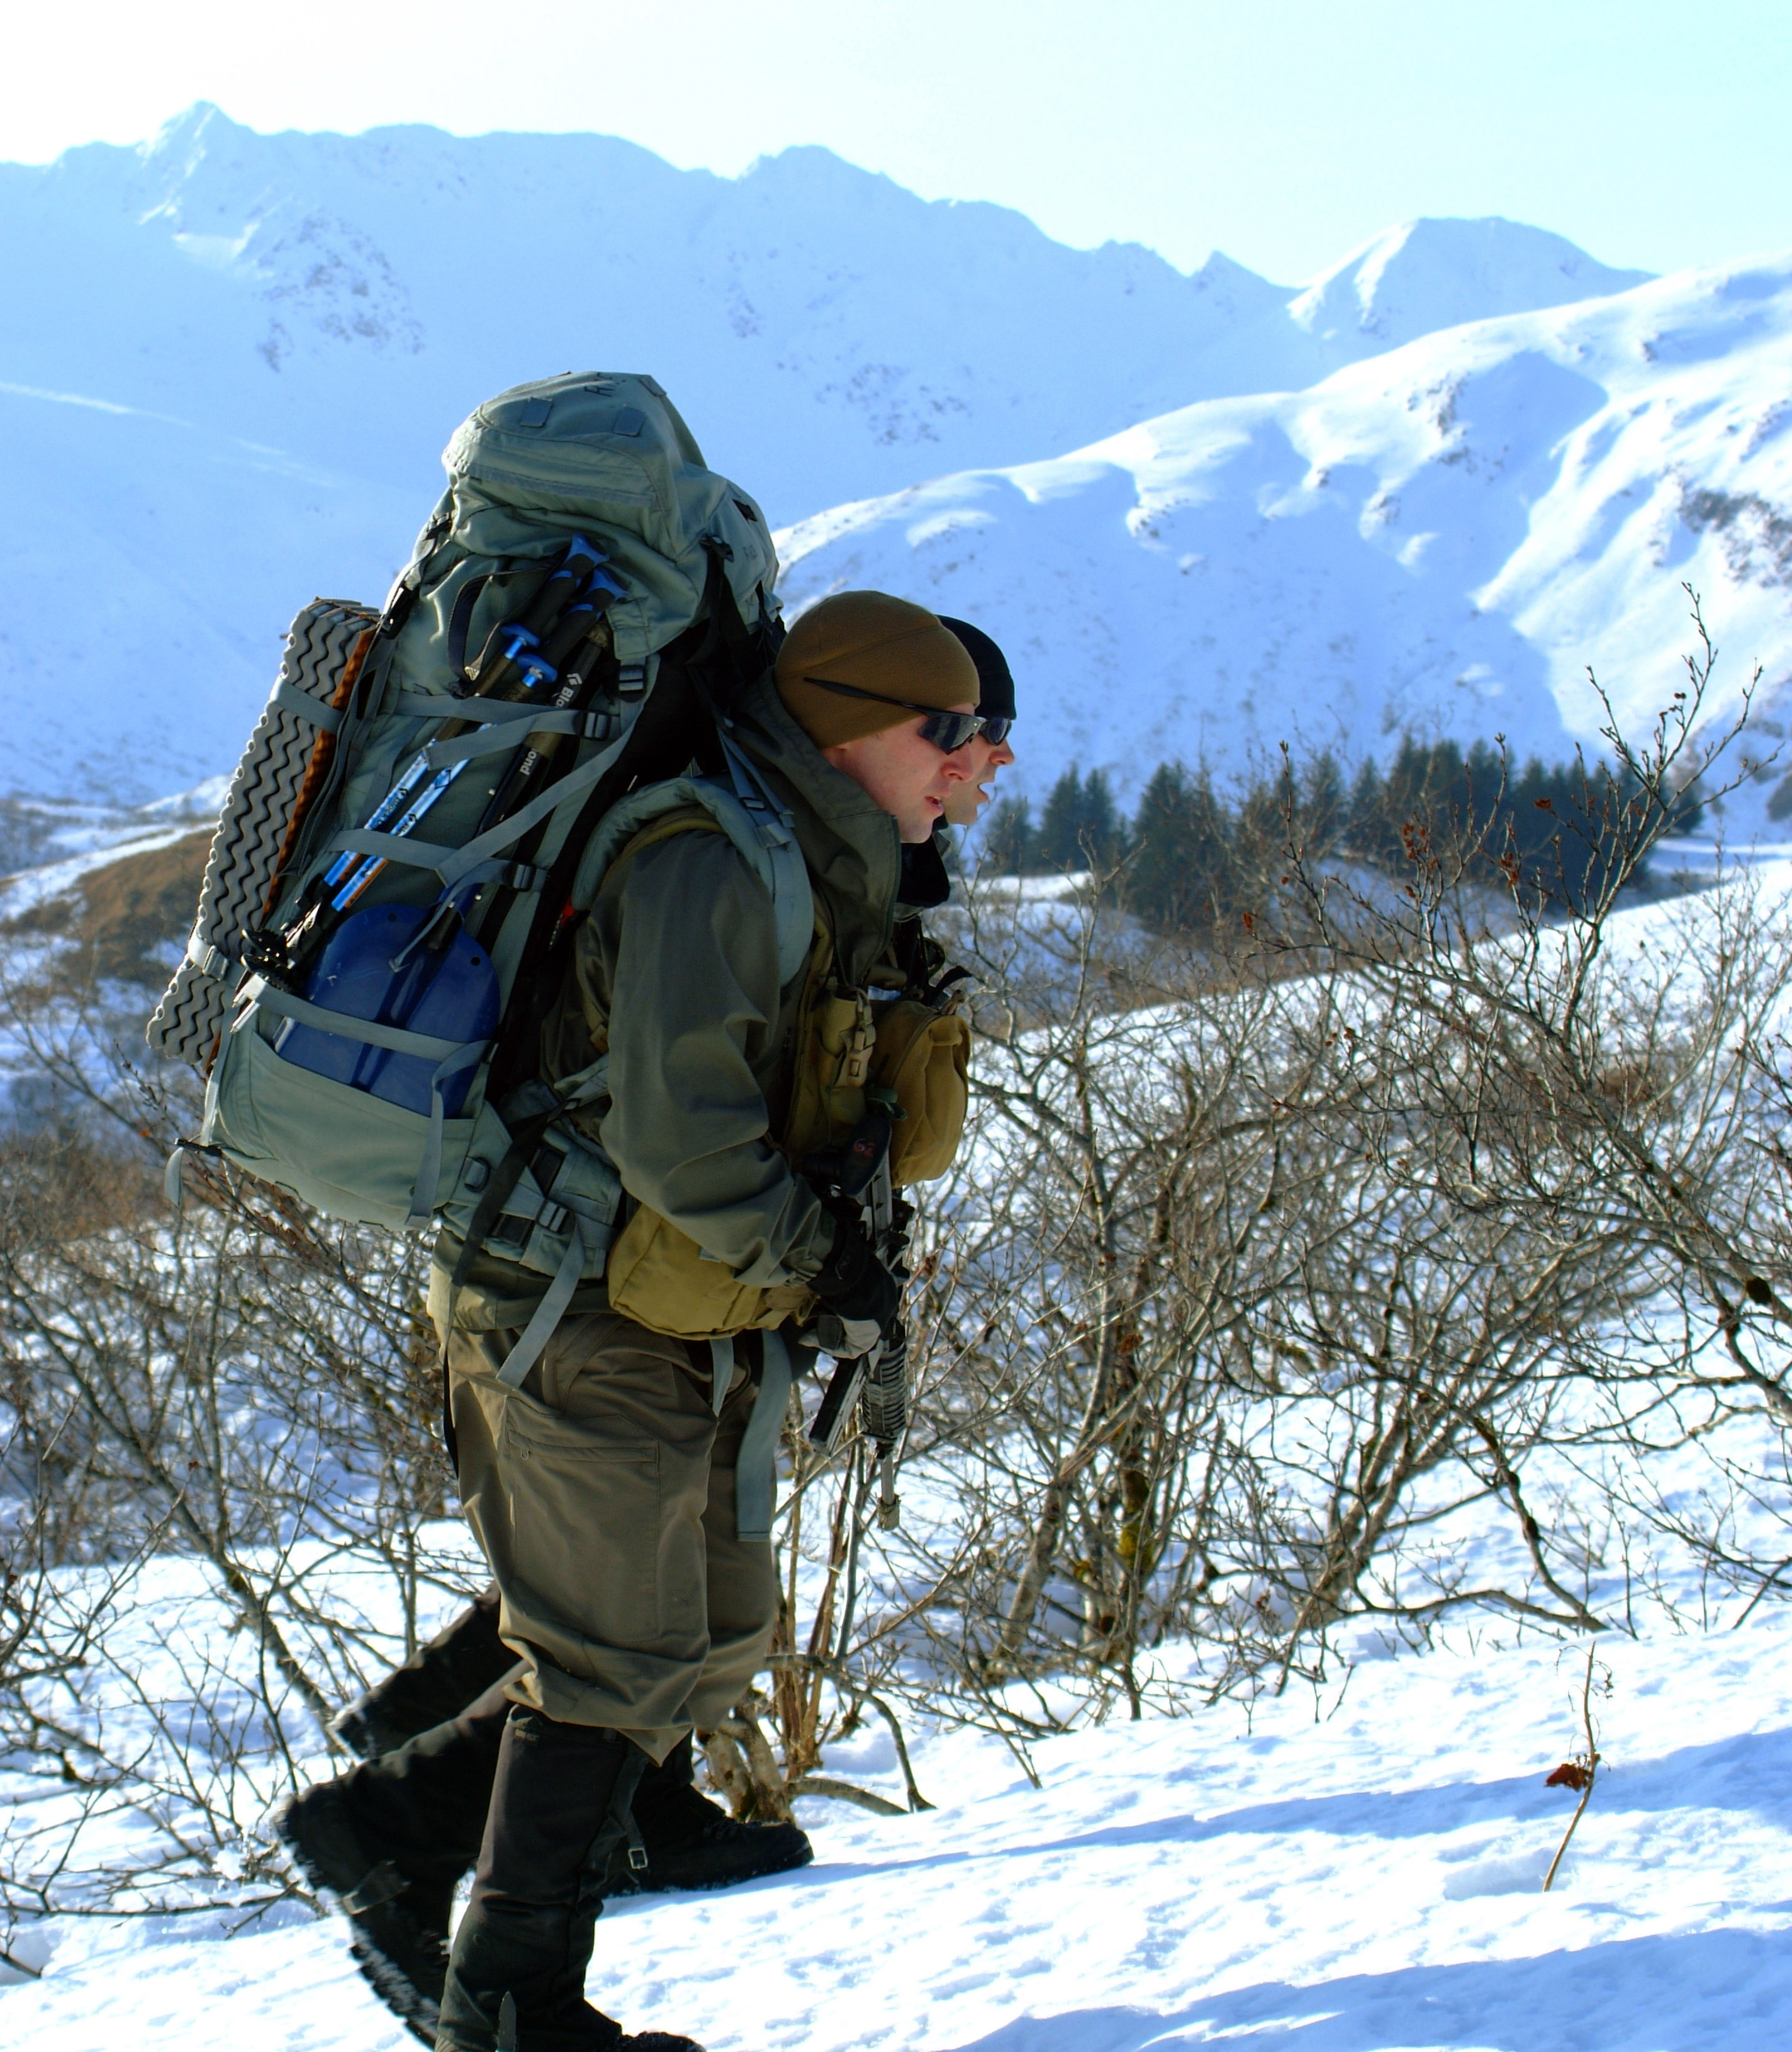 https://upload.wikimedia.org/wikipedia/commons/6/6f/US_Navy_070226-N-6552M-322_U.S._Navy_SEAL_trainees_participate_in_a_long-range_navigation_exercise_high_in_the_mountains_of_Alaska.jpg